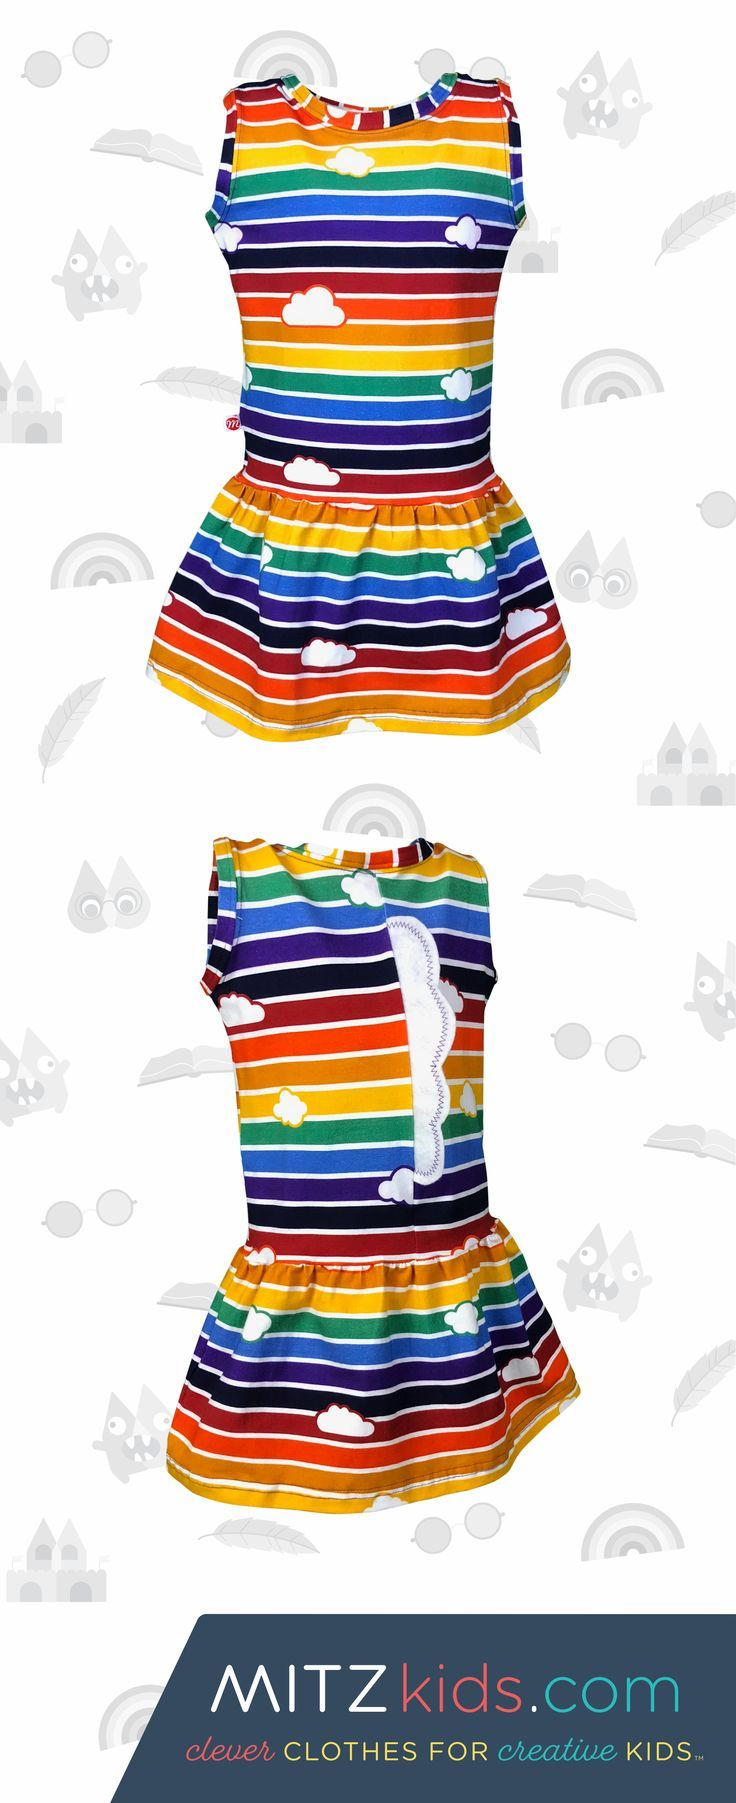 Retro Rainbow Children's Dress with Clouds | Mitz Kids The Retro Rainbow dress is designed to support children's developmental learning and early literacy development. The fun Rainbow kids dress is for babies, infants, toddlers and children (infant to Size 7).  It's perfect for a kids tea party, birthday party outfit, casual play clothes, summer kids clothes or for a play date. #babyclothes #toddlerfashion #kidsfashion #dresses #kidsdress #rainbow #kids